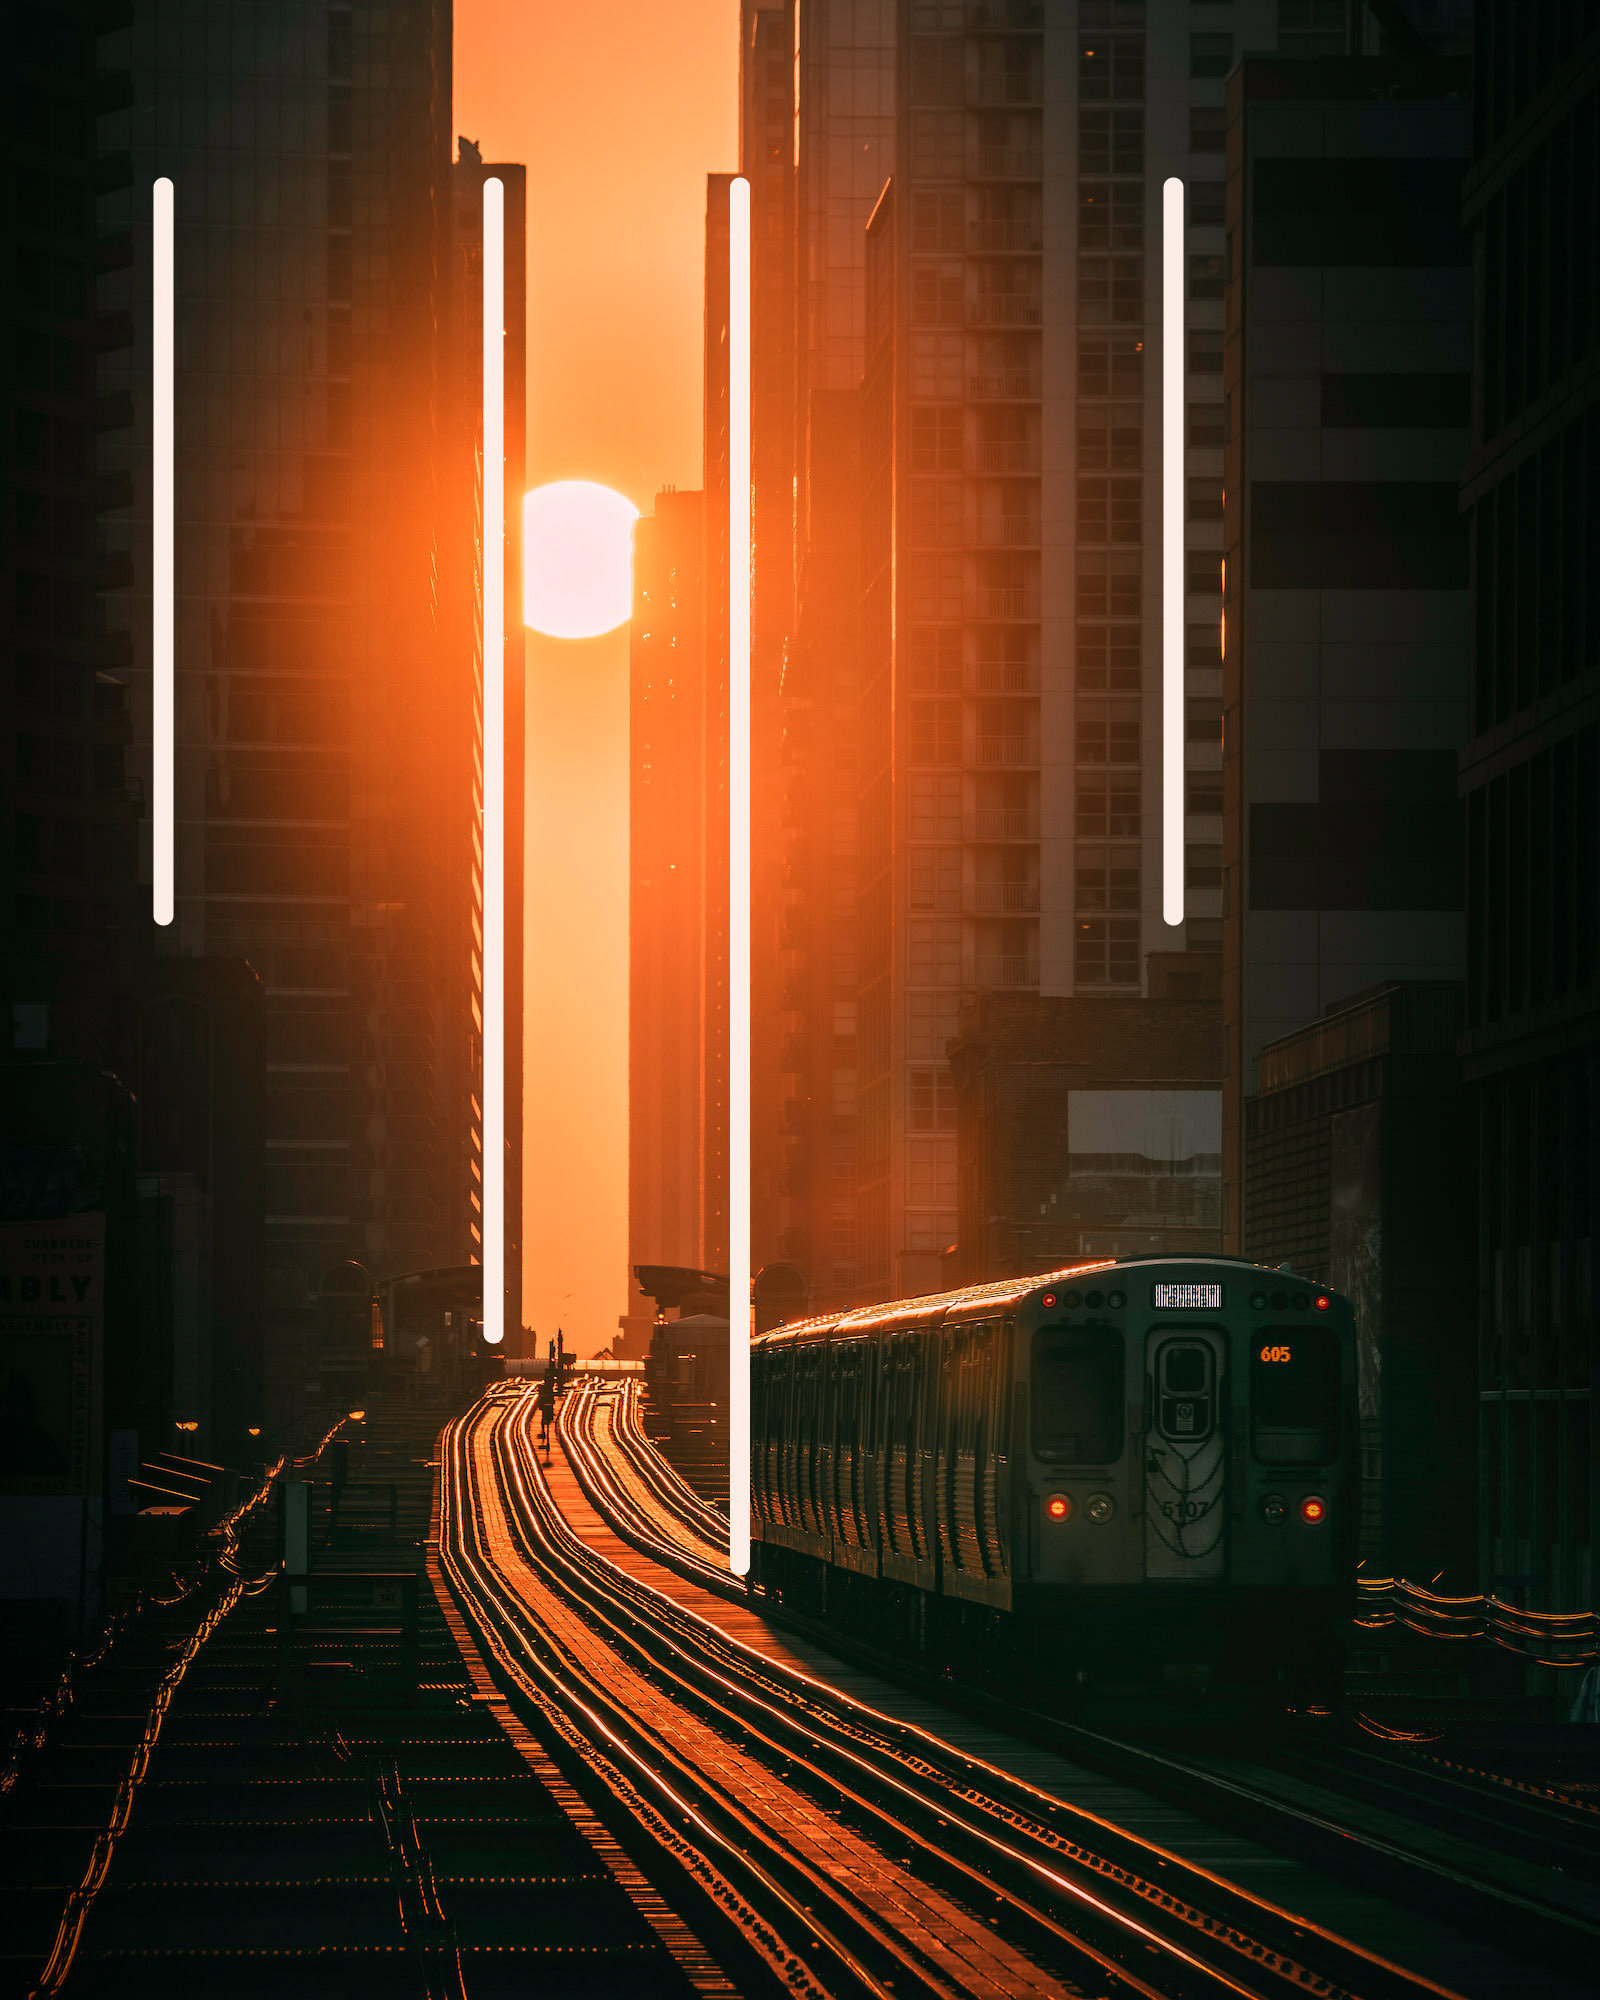 A train makes its way between towering buildings in the golden light of the sun, Chicago USA, with added leading lines to show the compositional technique